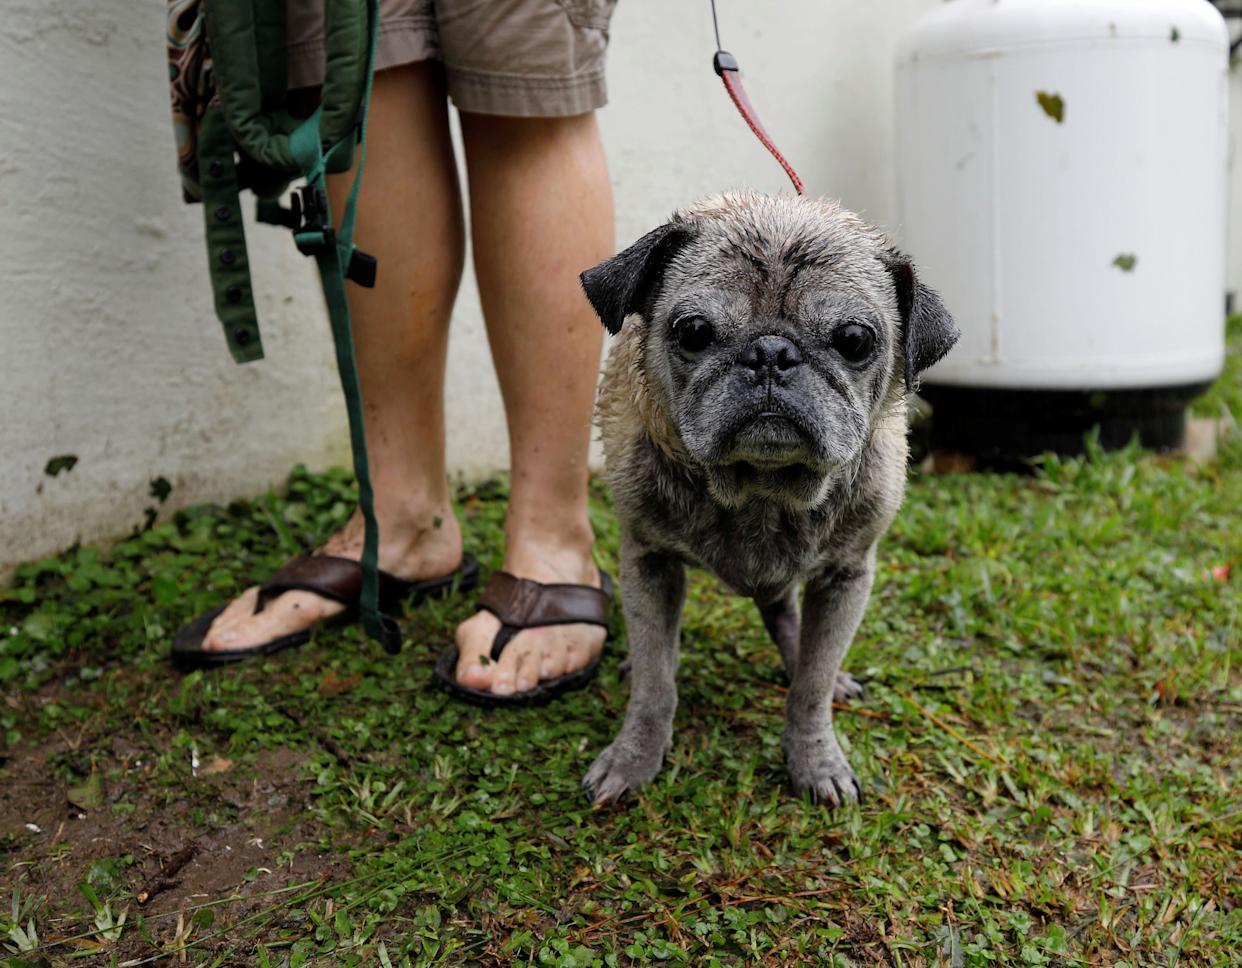 A wet dog waits with his owners as they await rescue from rising flood waters in the aftermath of Hurricane Florence in Leland, North Carolina, U.S., September 16, 2018.